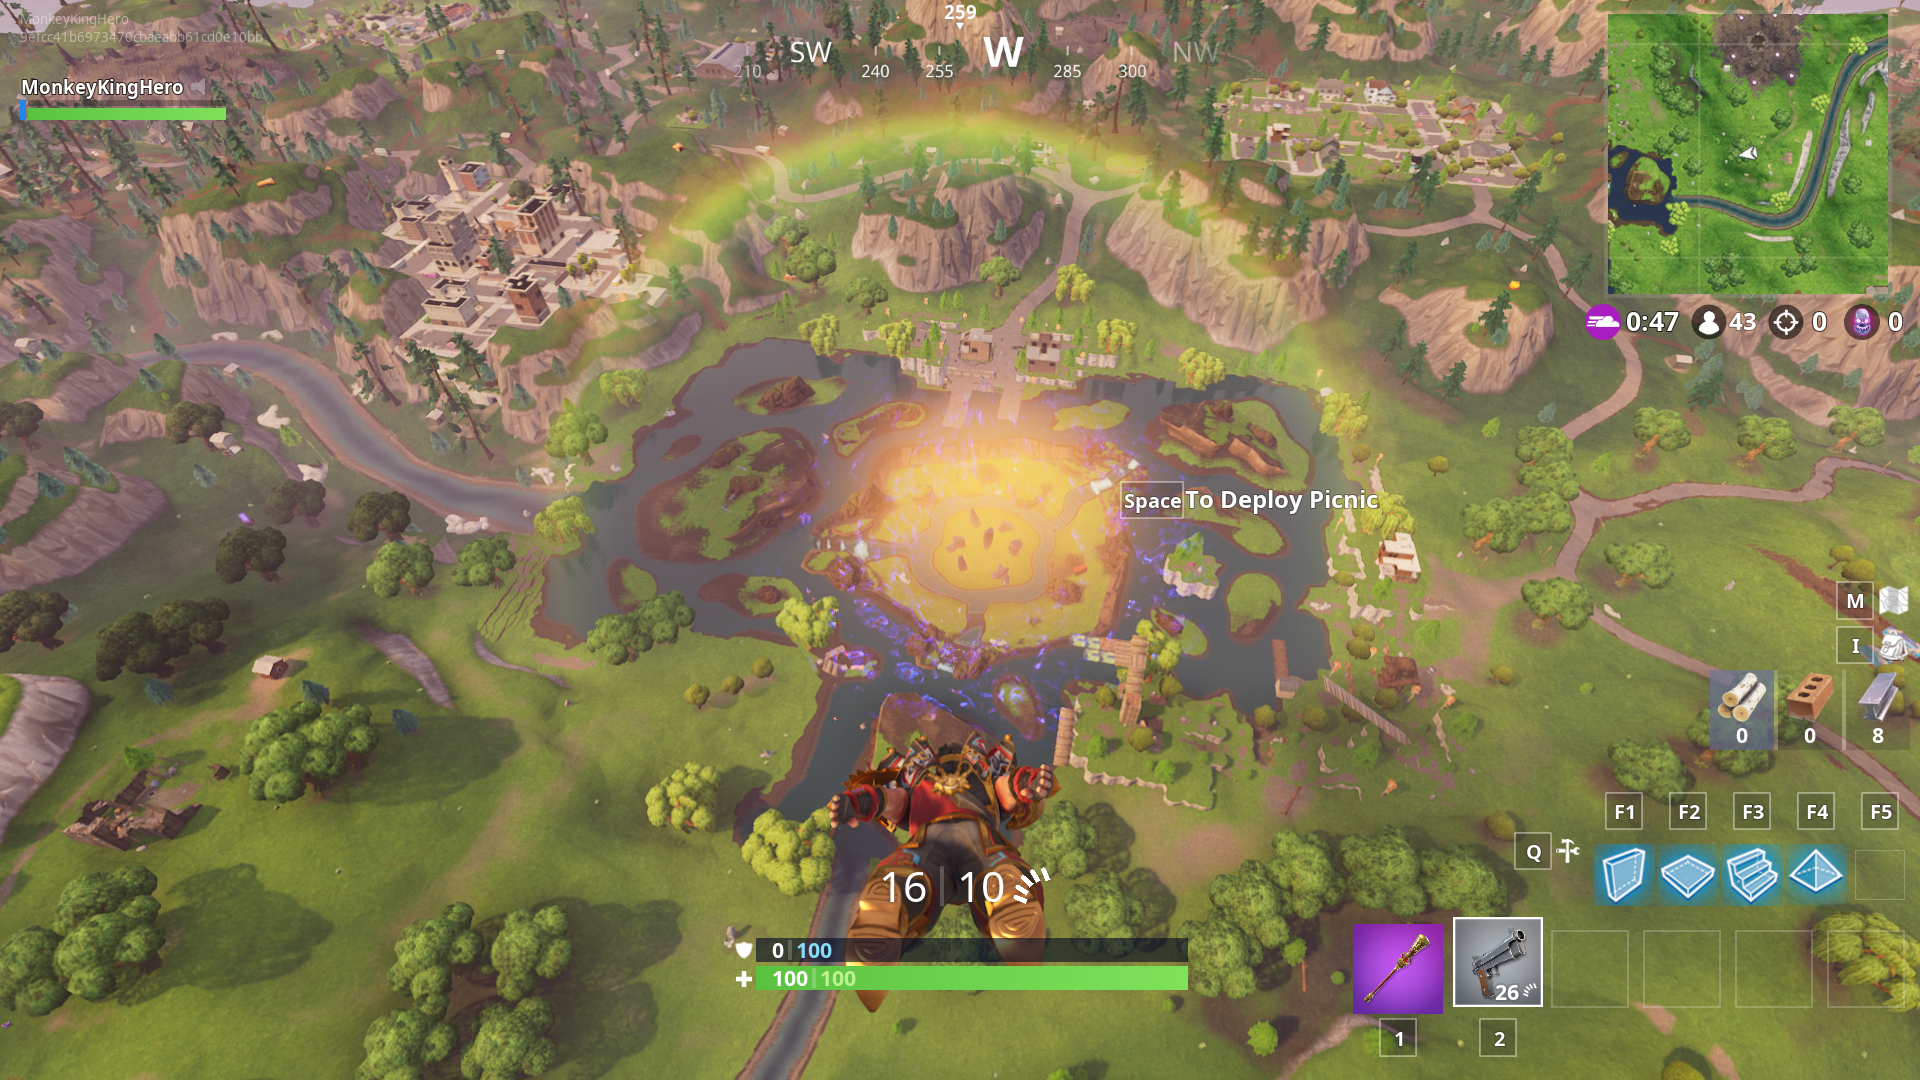 fortnite s giant purple cube exploded during the one time event creating a new leaky lake - preston fortnite newest video